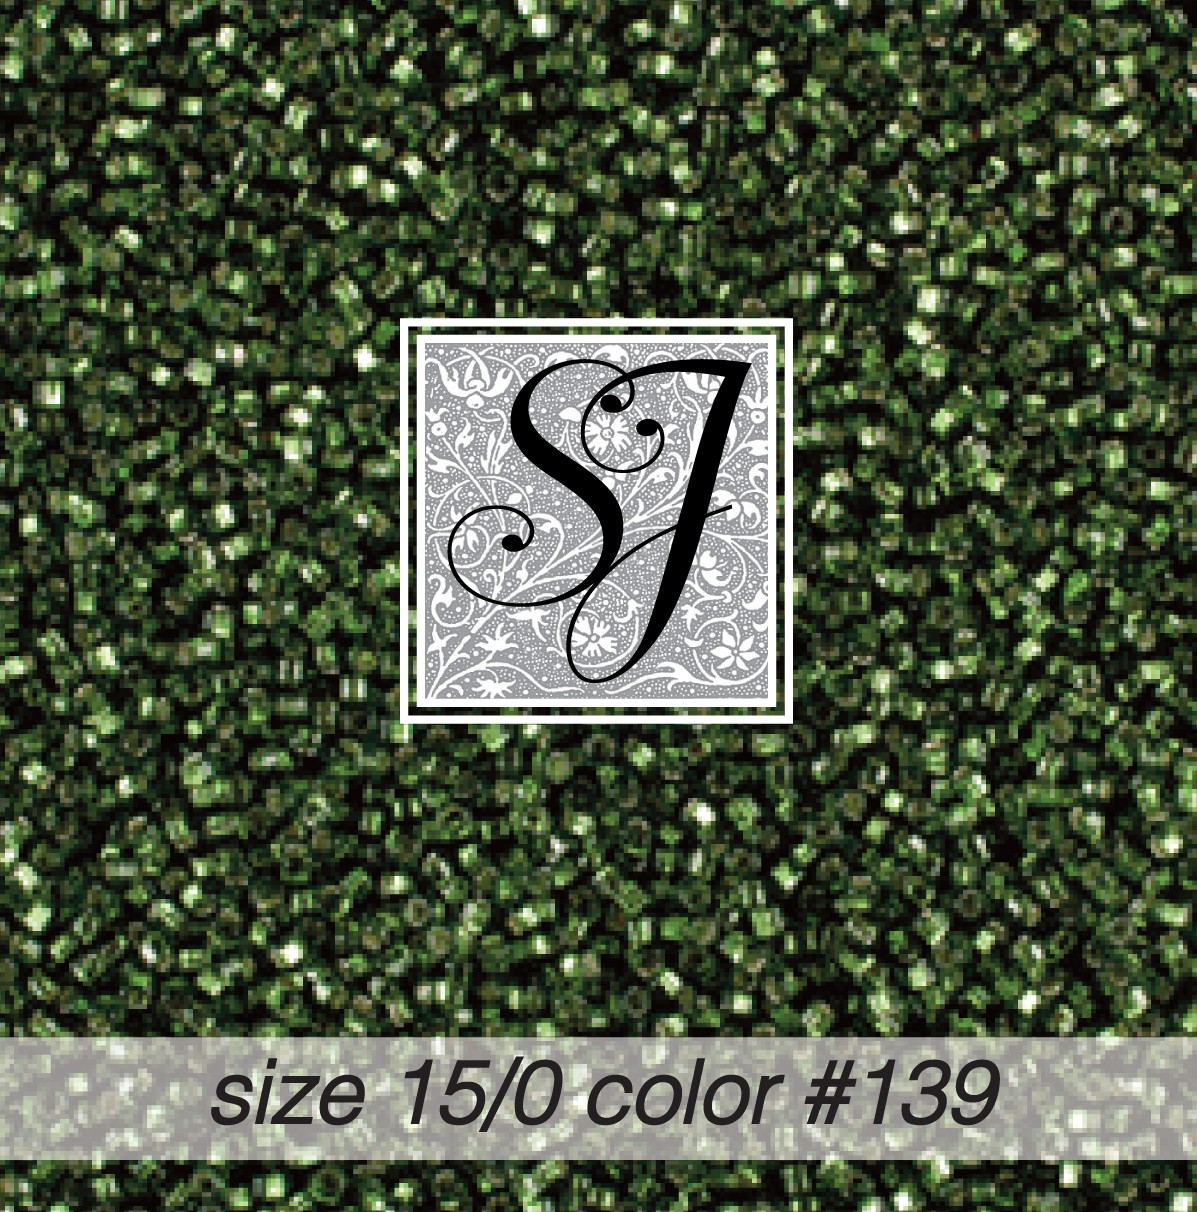 139 Ivy Green Silver Lined 15/0 Seed Bead